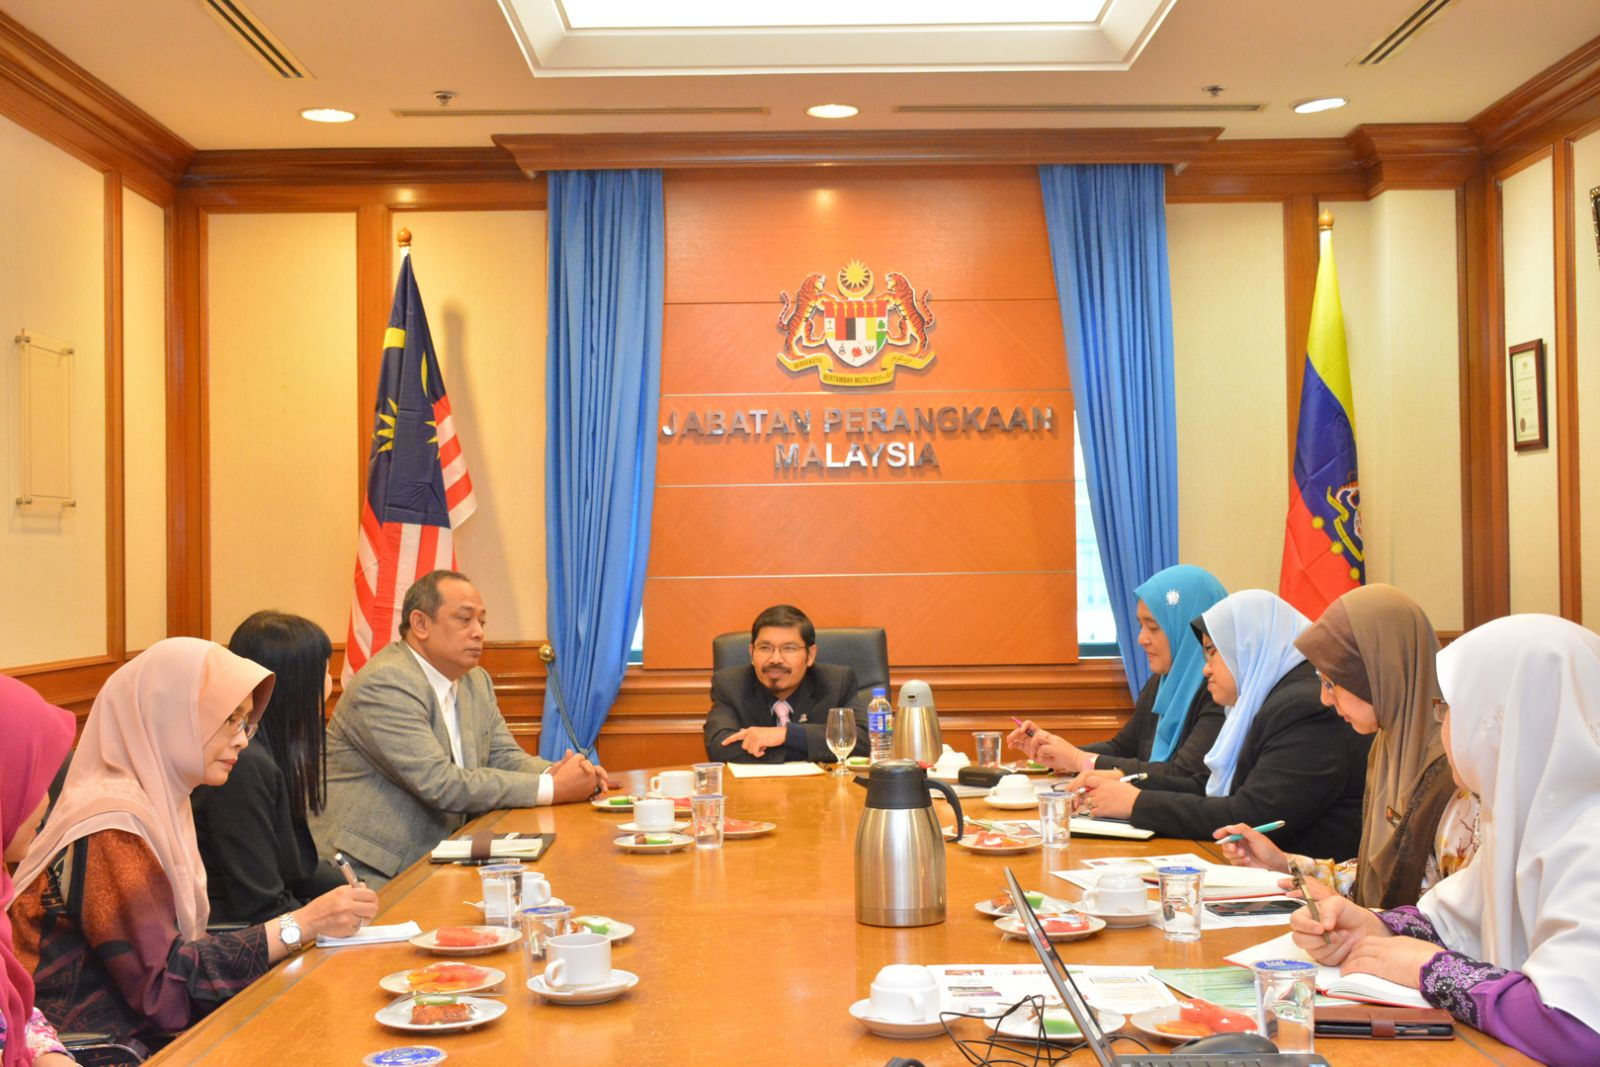 Courtesy call by Faculty Computer and Mathematical Sciences (FSKM), UiTM Shah Alam